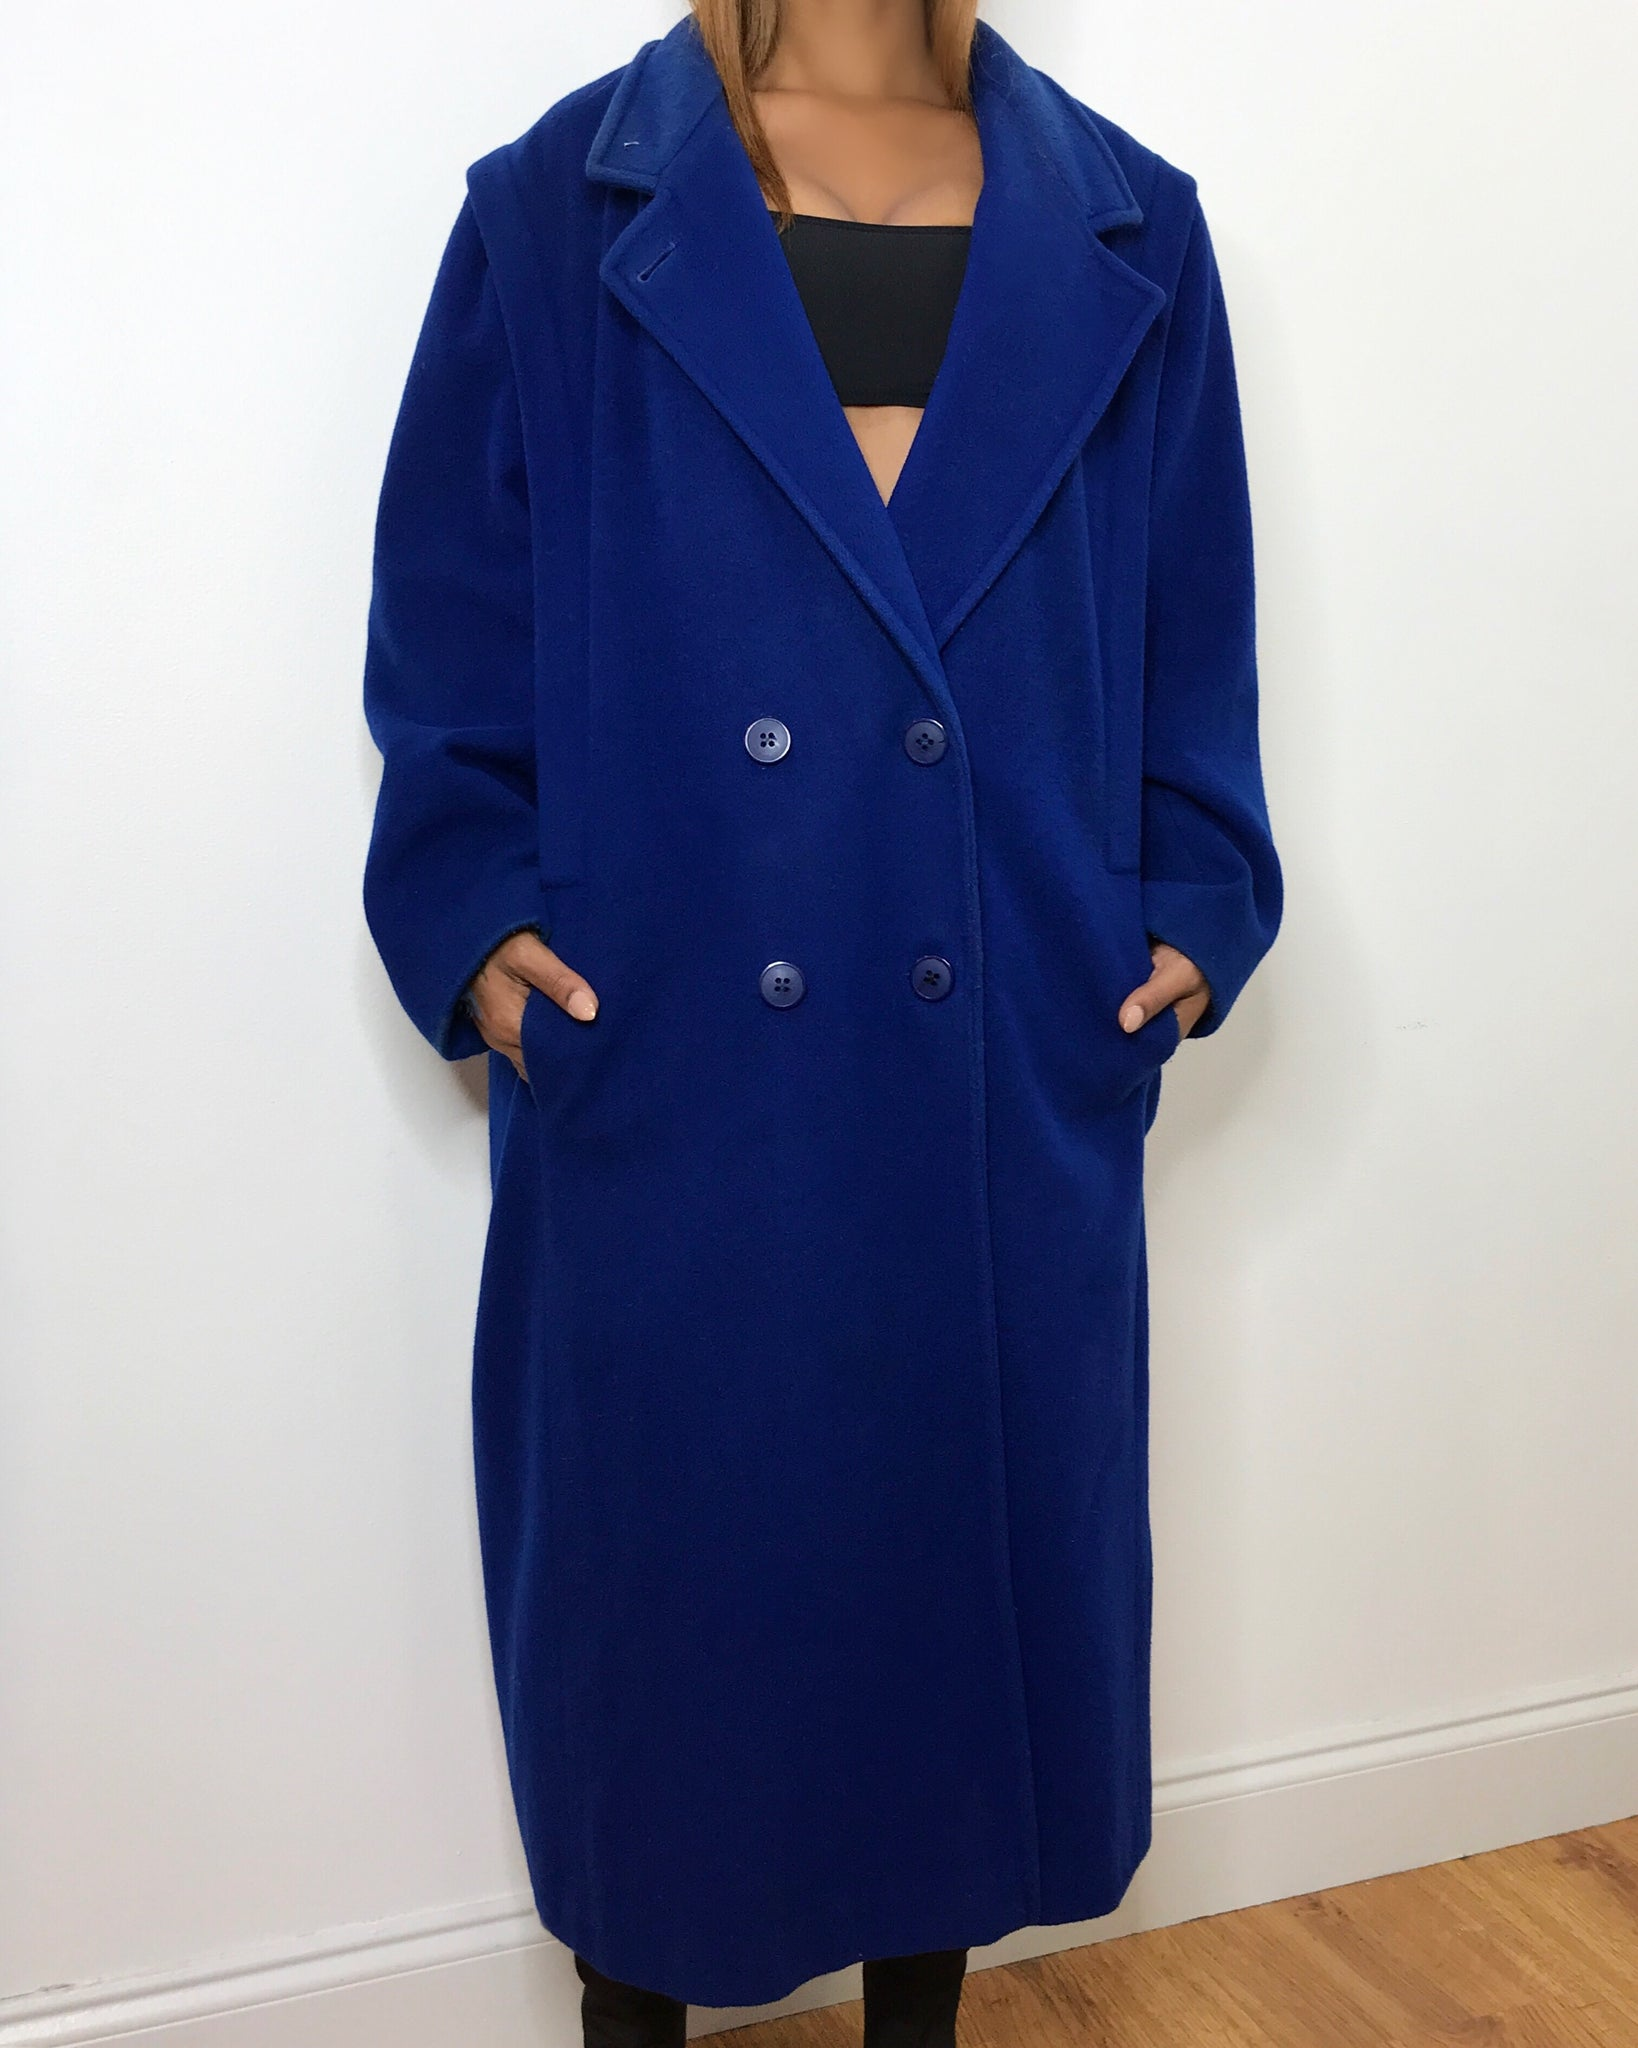 Blueberry 100% Wool Overcoat